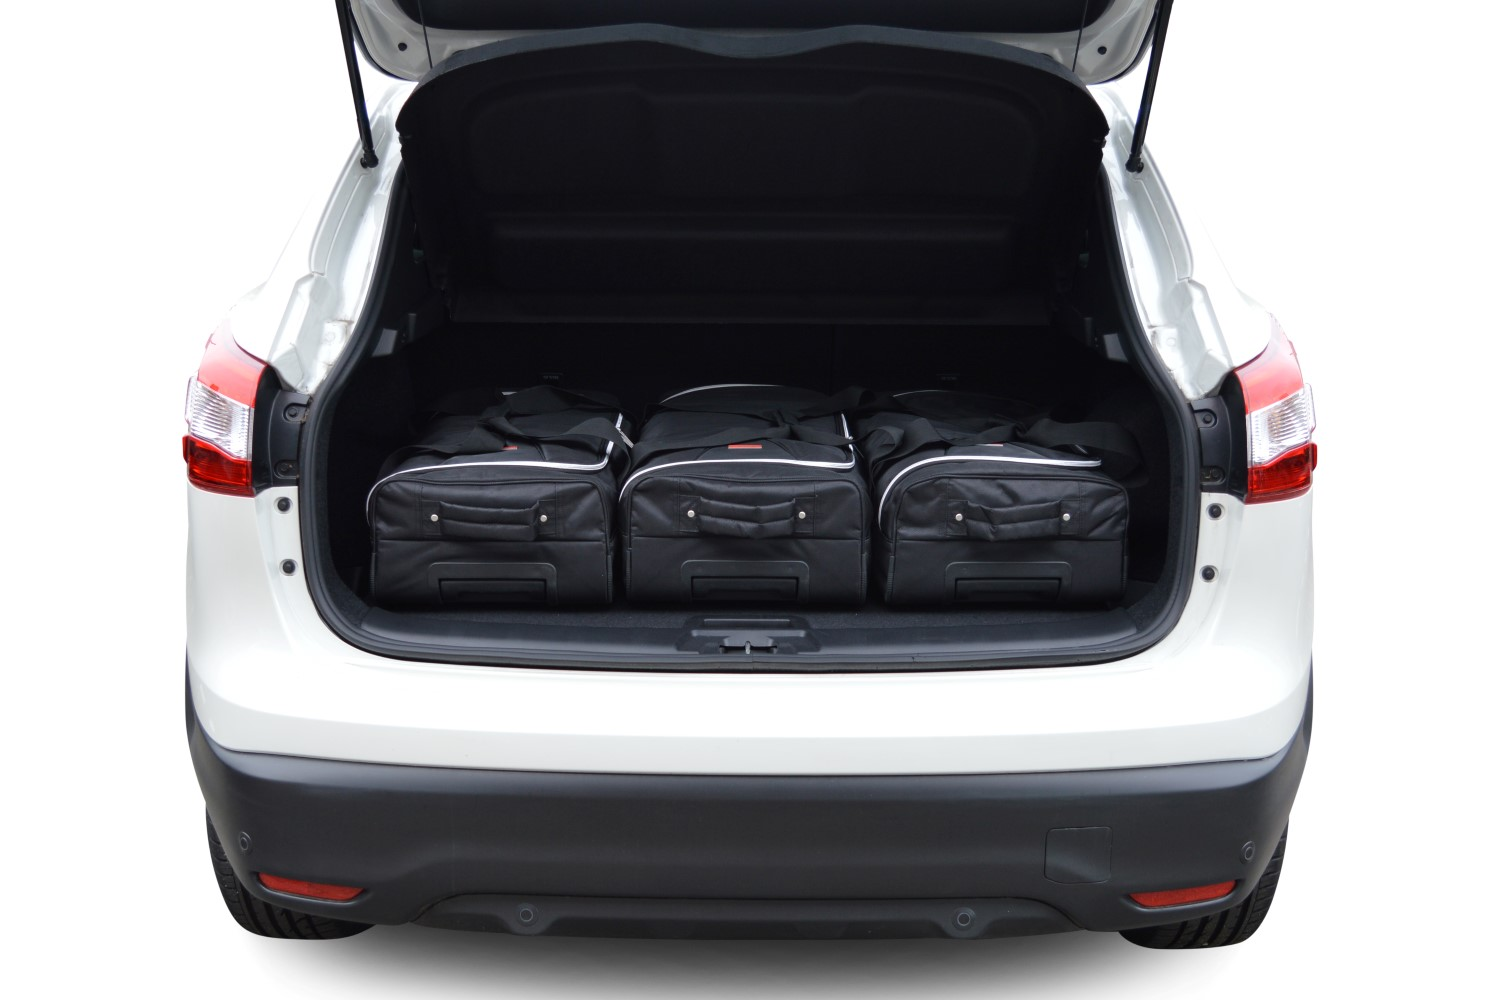 nissan qashqai j11 car travel bags car. Black Bedroom Furniture Sets. Home Design Ideas